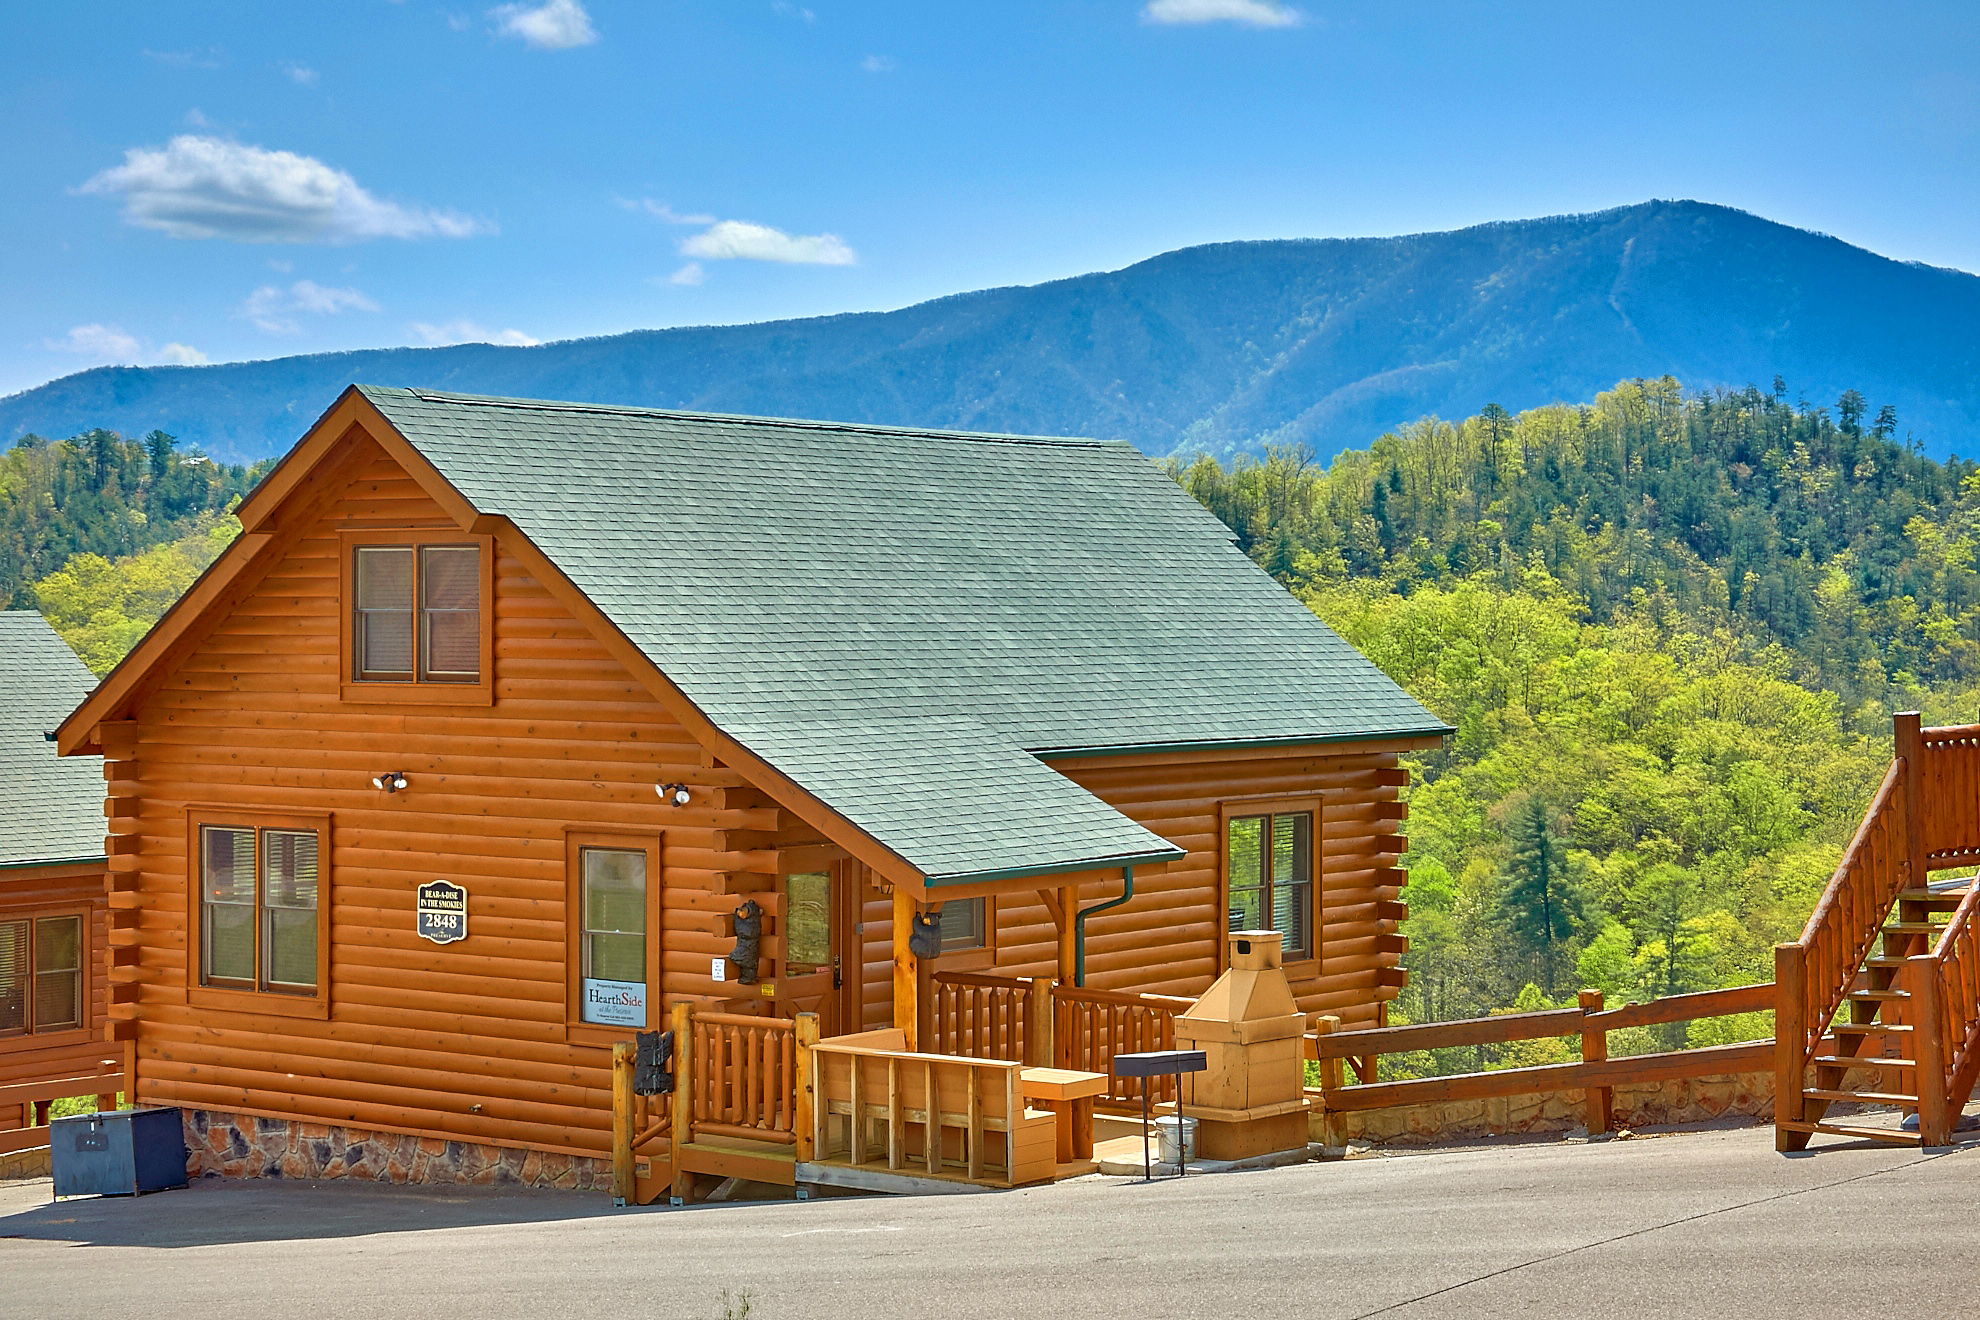 BEAR A DISE IN THE SMOKIES 2 BEDROOM cabin located in